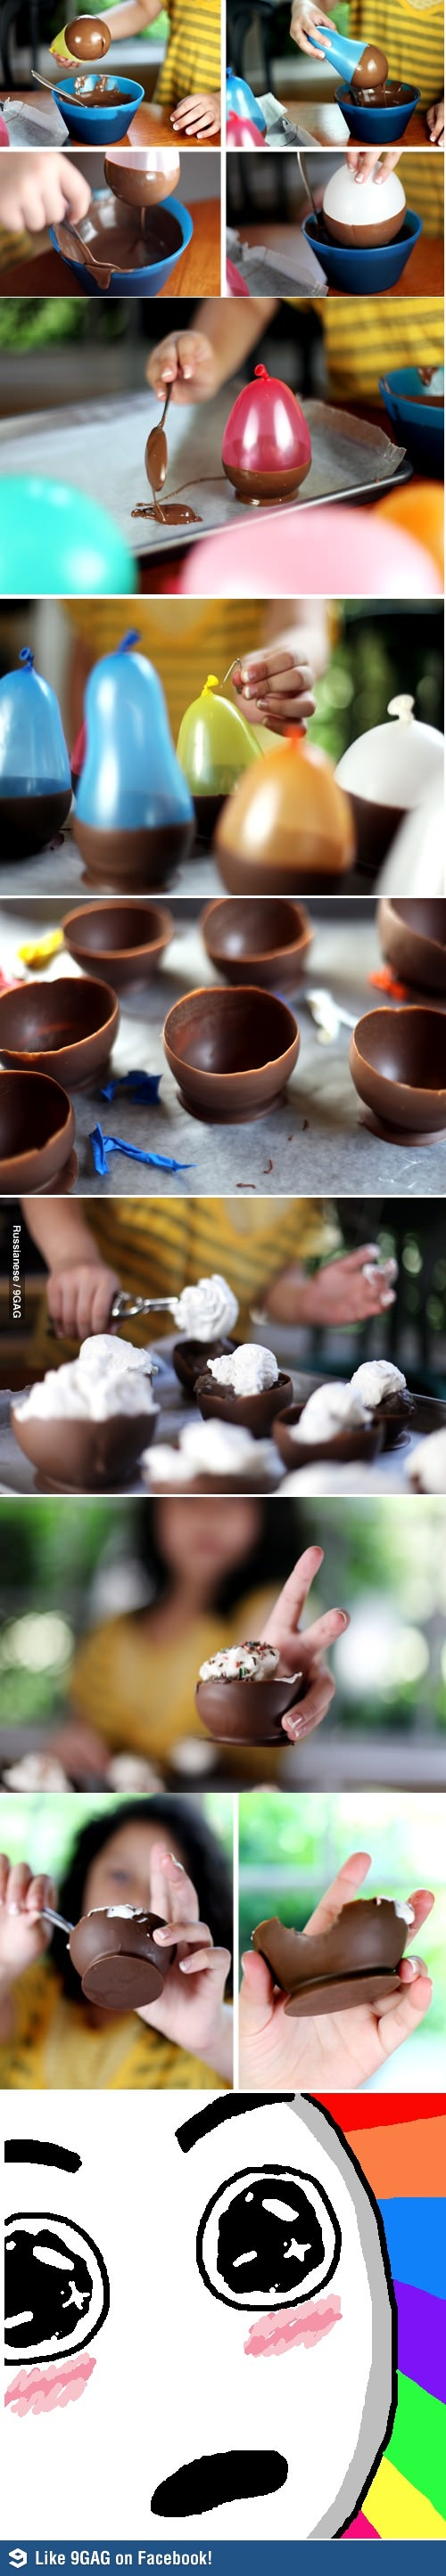 I heard you like Chocolate cups